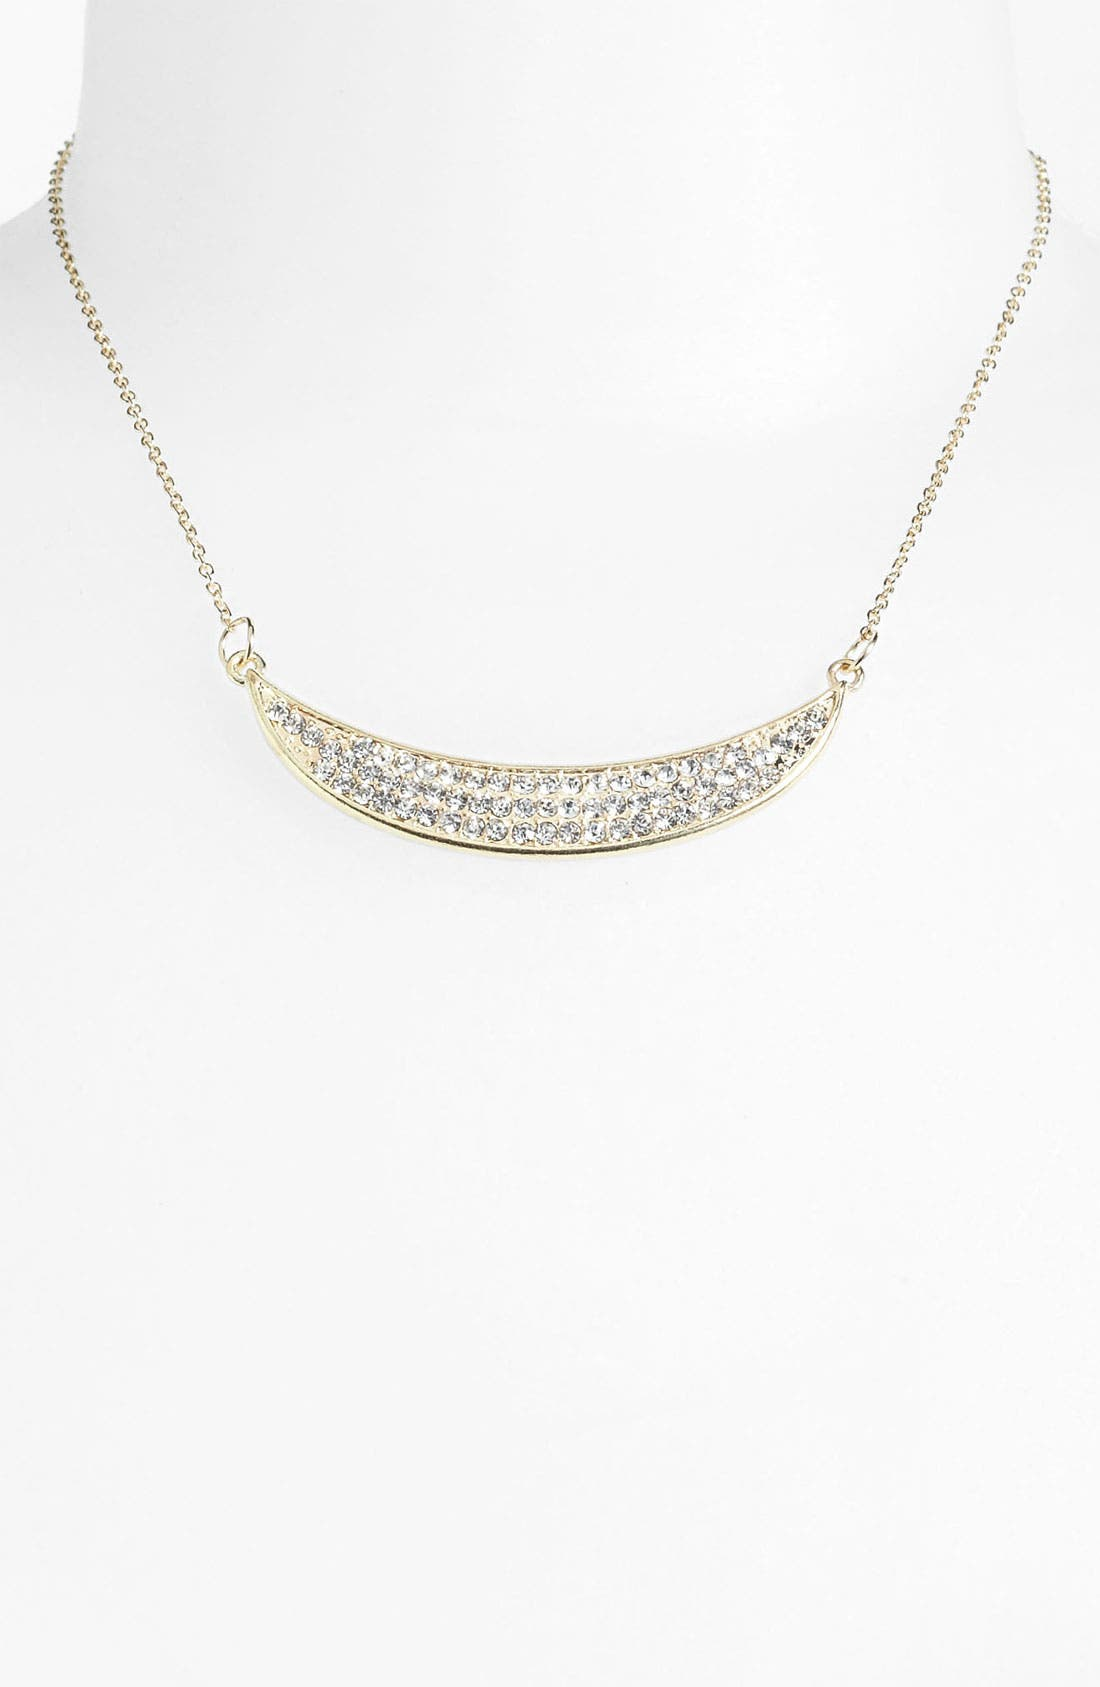 Main Image - Carole Rhinestone Crescent Necklace